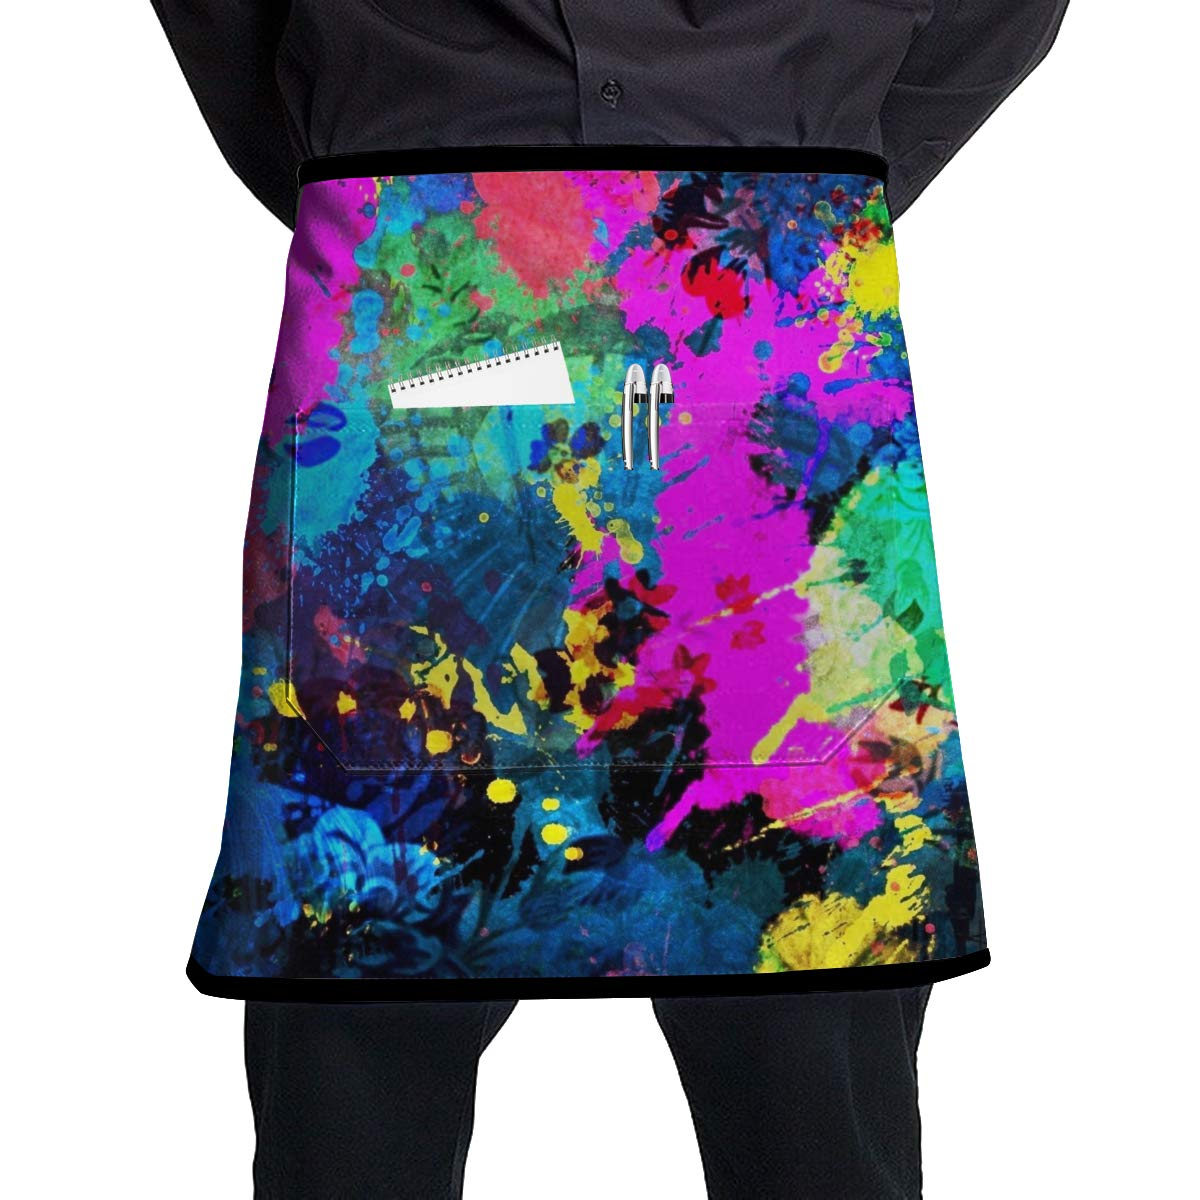 Adjustable Bib Apron with Pocket for Women, Men, Chef, Kitchen, Home, Restaurant, Cafe, Cooking, Baking, Gardening (Psychedelic Trippy Splash Painting)